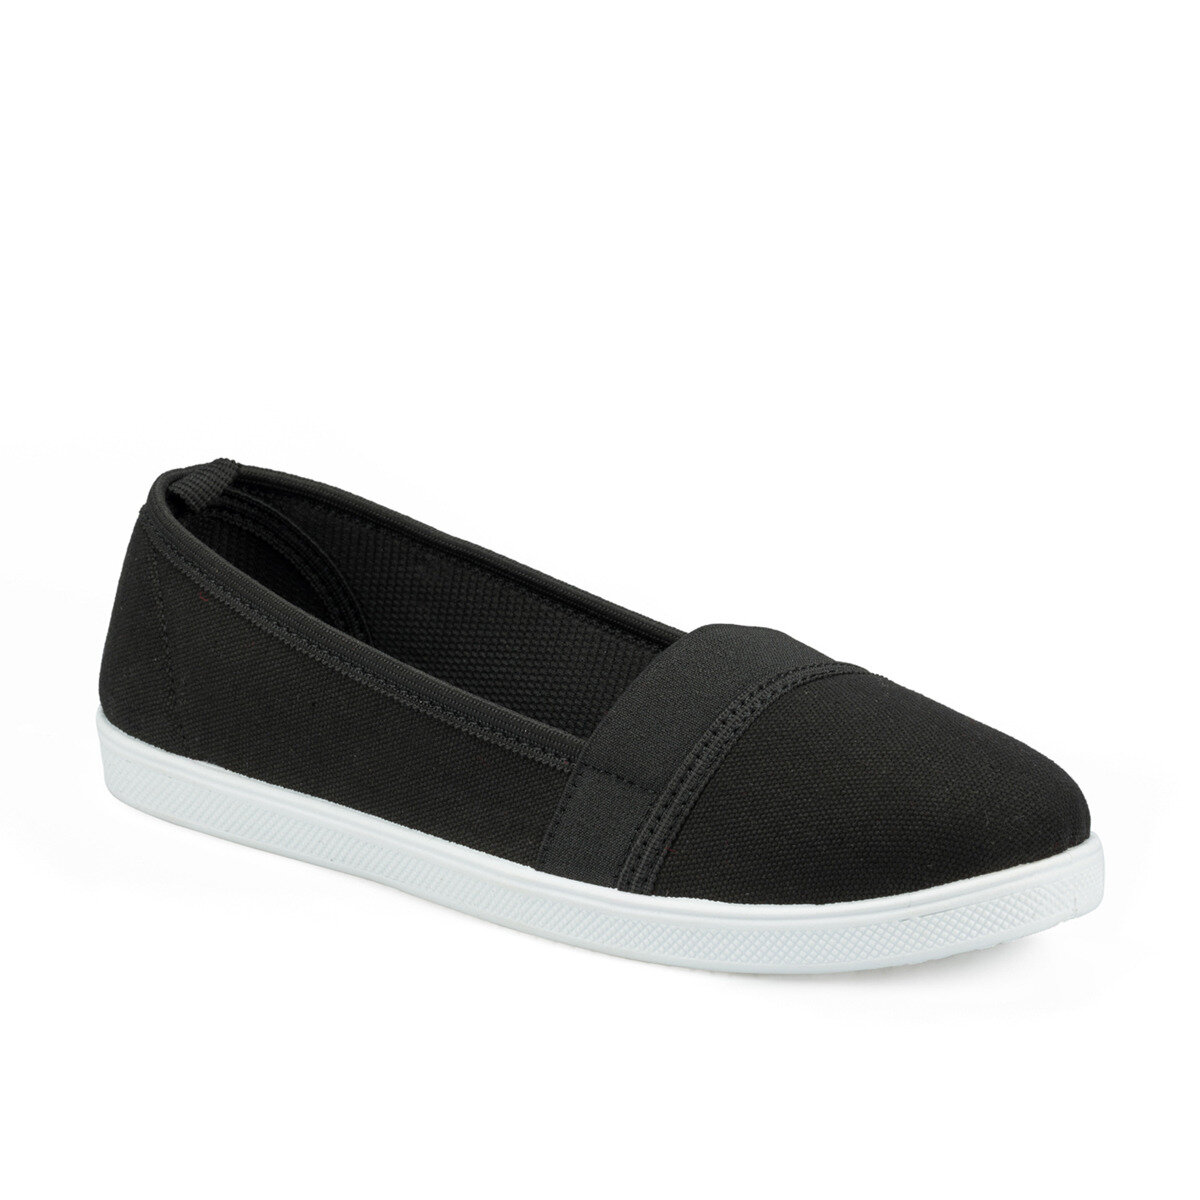 FLO 315622.Z Black Women Slip On Shoes Polaris